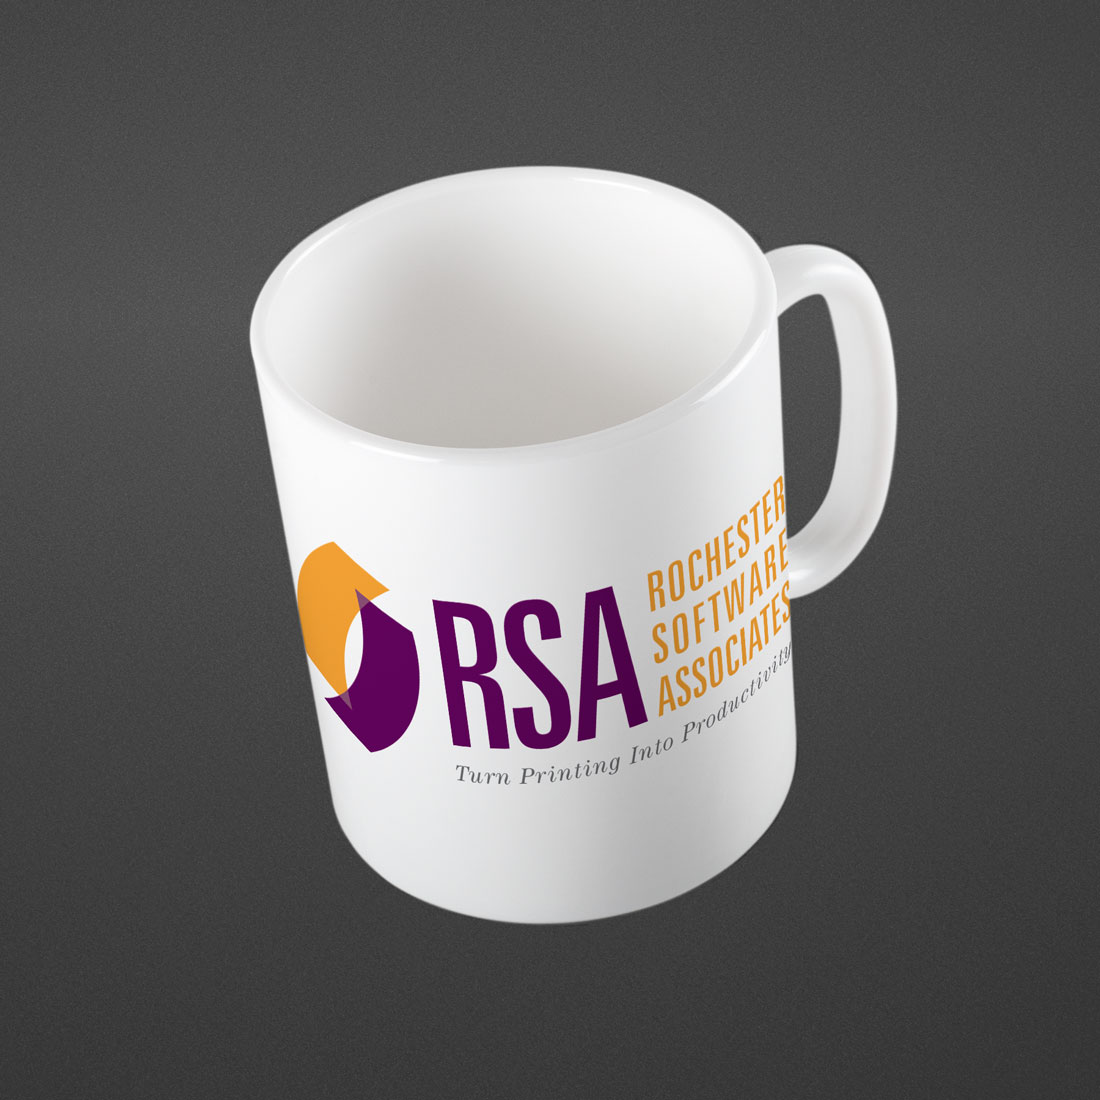 Photo of mug with Rochester Software Associates logo designed by Pixelpunk Creative.